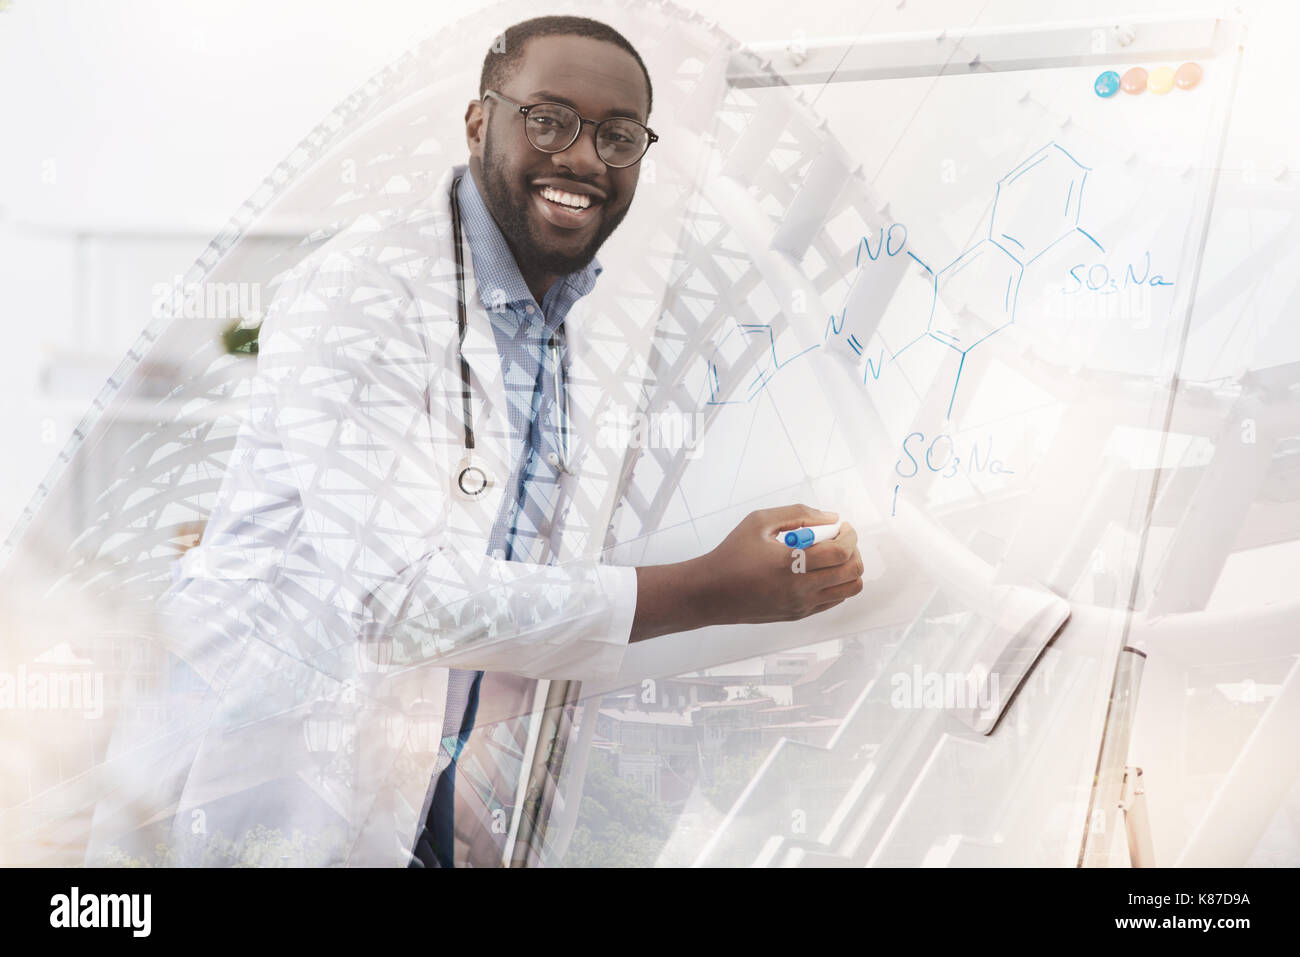 Excited chemist using marker pen - Stock Image